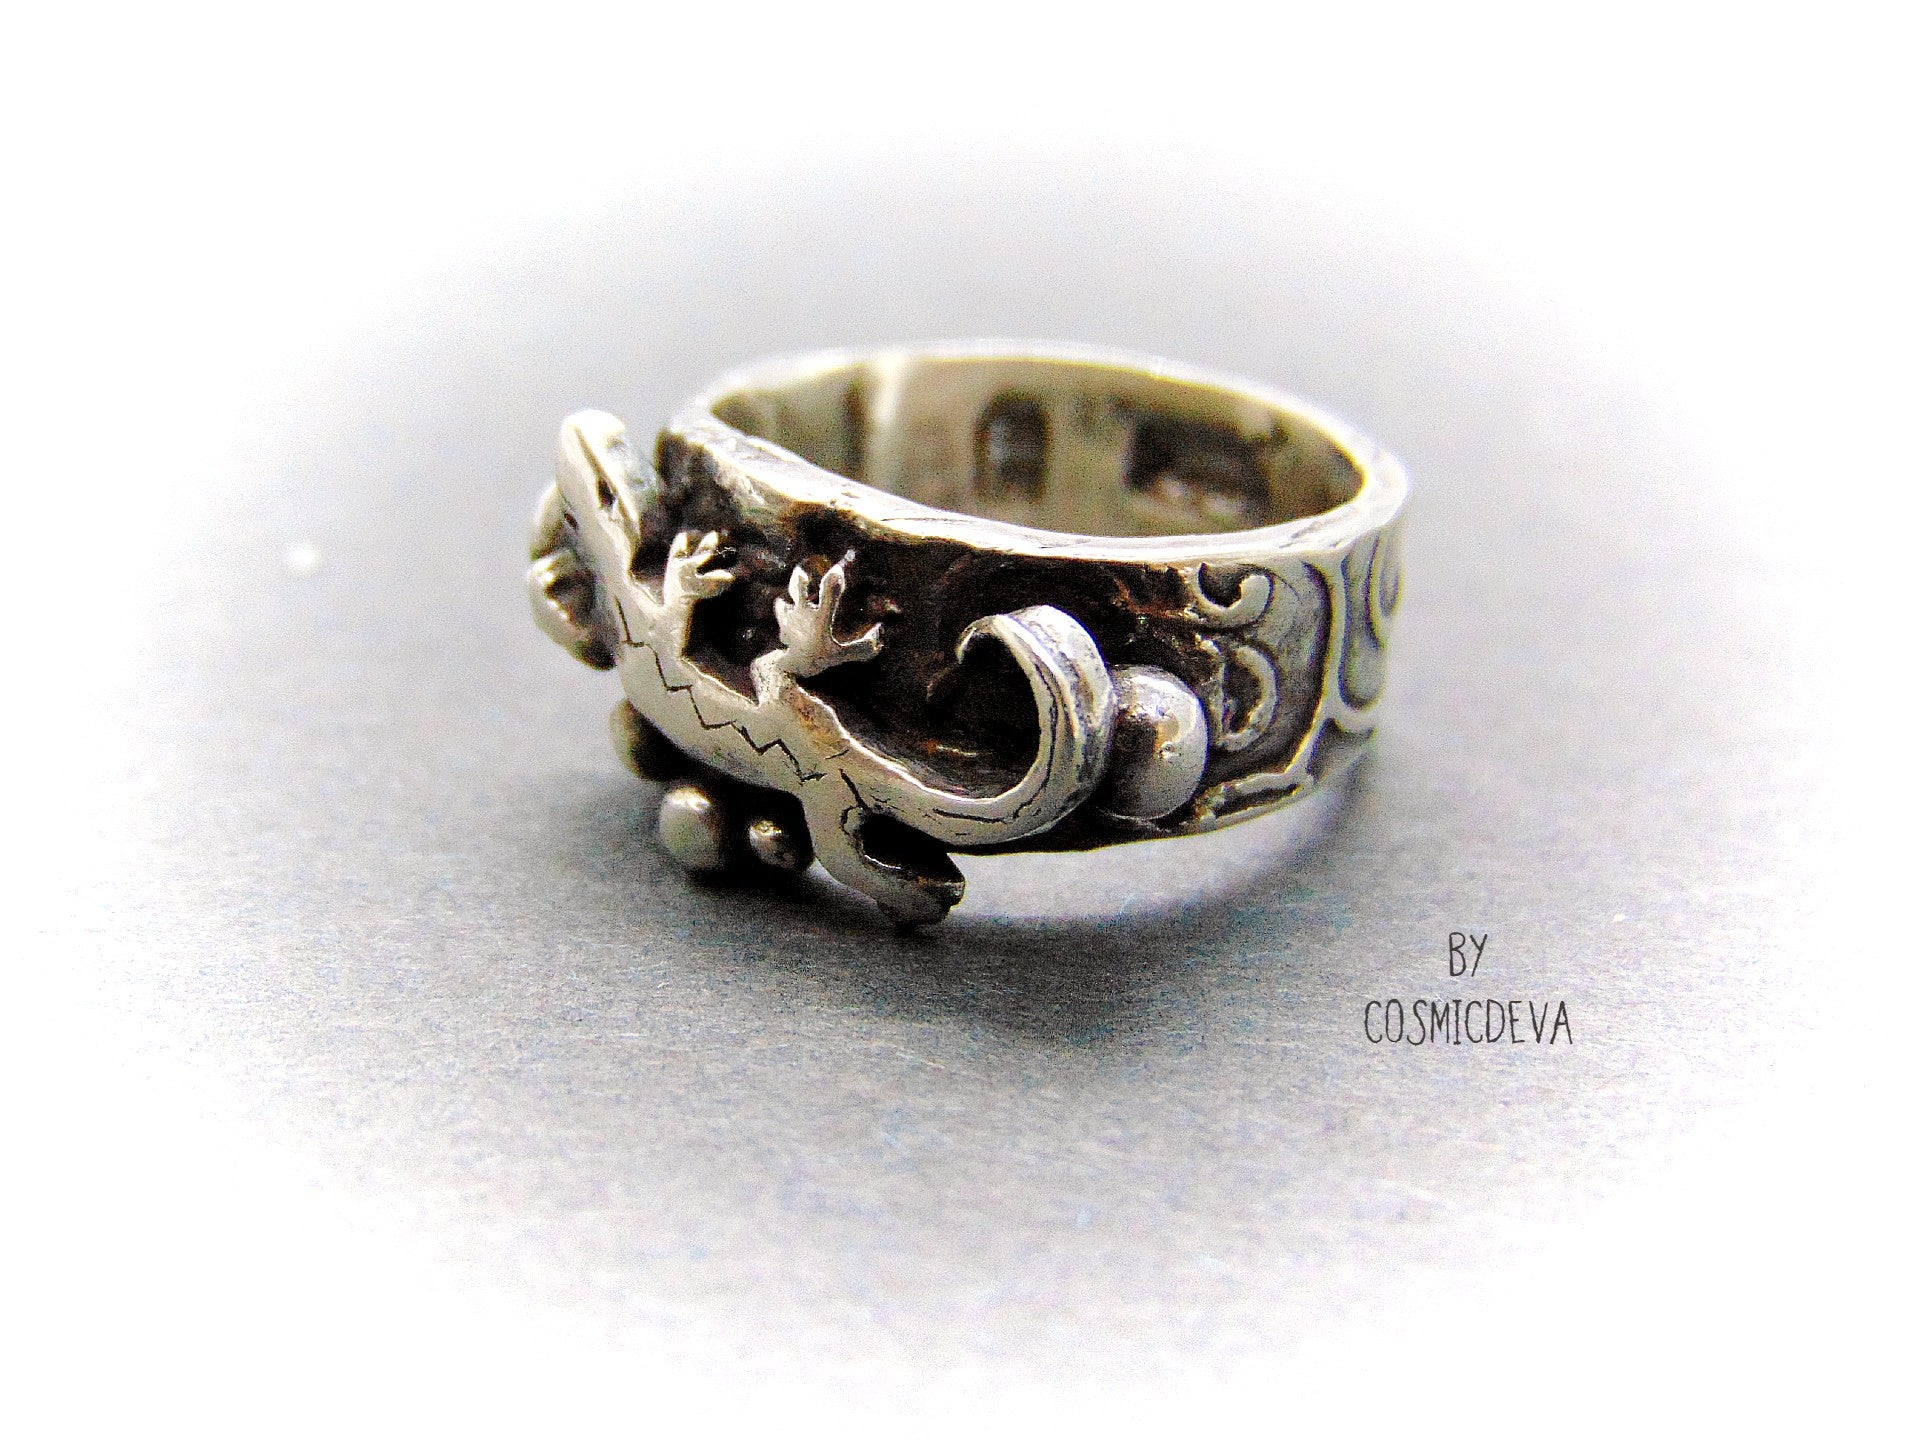 Lizard Gecko Sterling Silver Ring, Reptile Jewelry, US Size 6 Ring - CosmicDeva